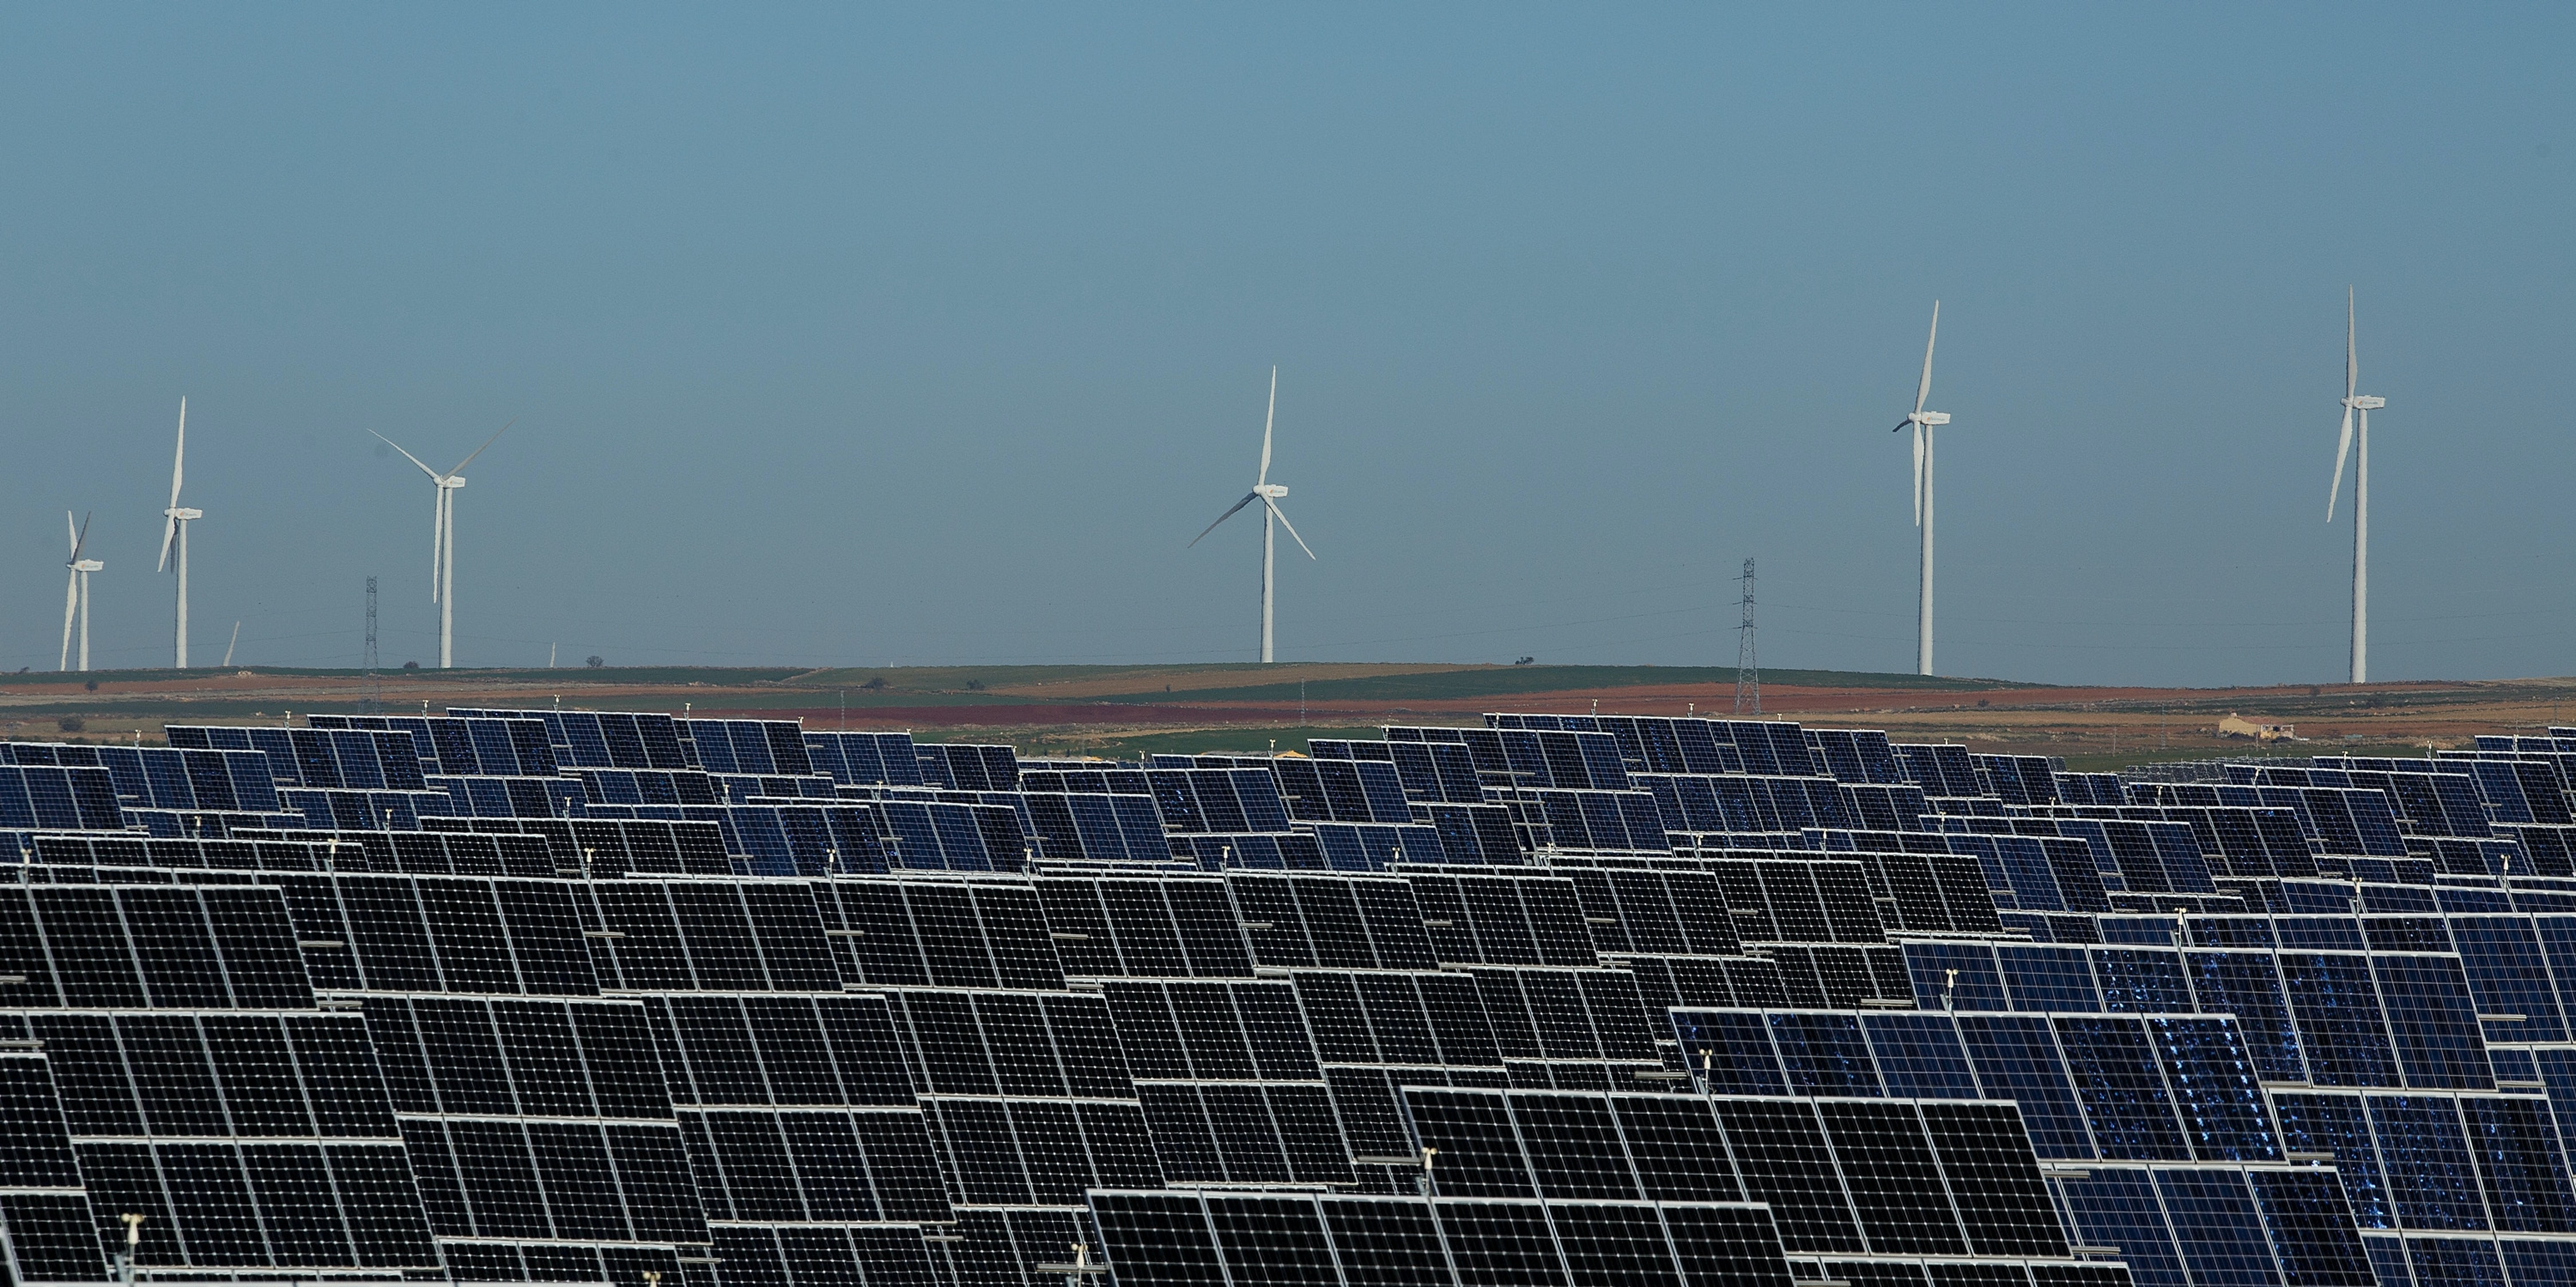 EL BONILLO, SPAIN - DECEMBER 02:  Photovoltaic power panels stand at Abaste's El Bonillo Solar Plant while wind turbines spin at a wind farm on the background on December 2, 2015 in El Bonillo, Albacete province, Spain. Spain in 2008 was a leading country on photovoltaic power and renewable energies but after some law changes the solar power industry collapsed, with companies either closing or turning to overseas markets. The UN Climate Change Summit is taking place in Paris over two weeks, in an attempt to agree on an international deal to curb greenhouse gas emissions.  (Photo by Pablo Blazquez Dominguez/Getty Images)